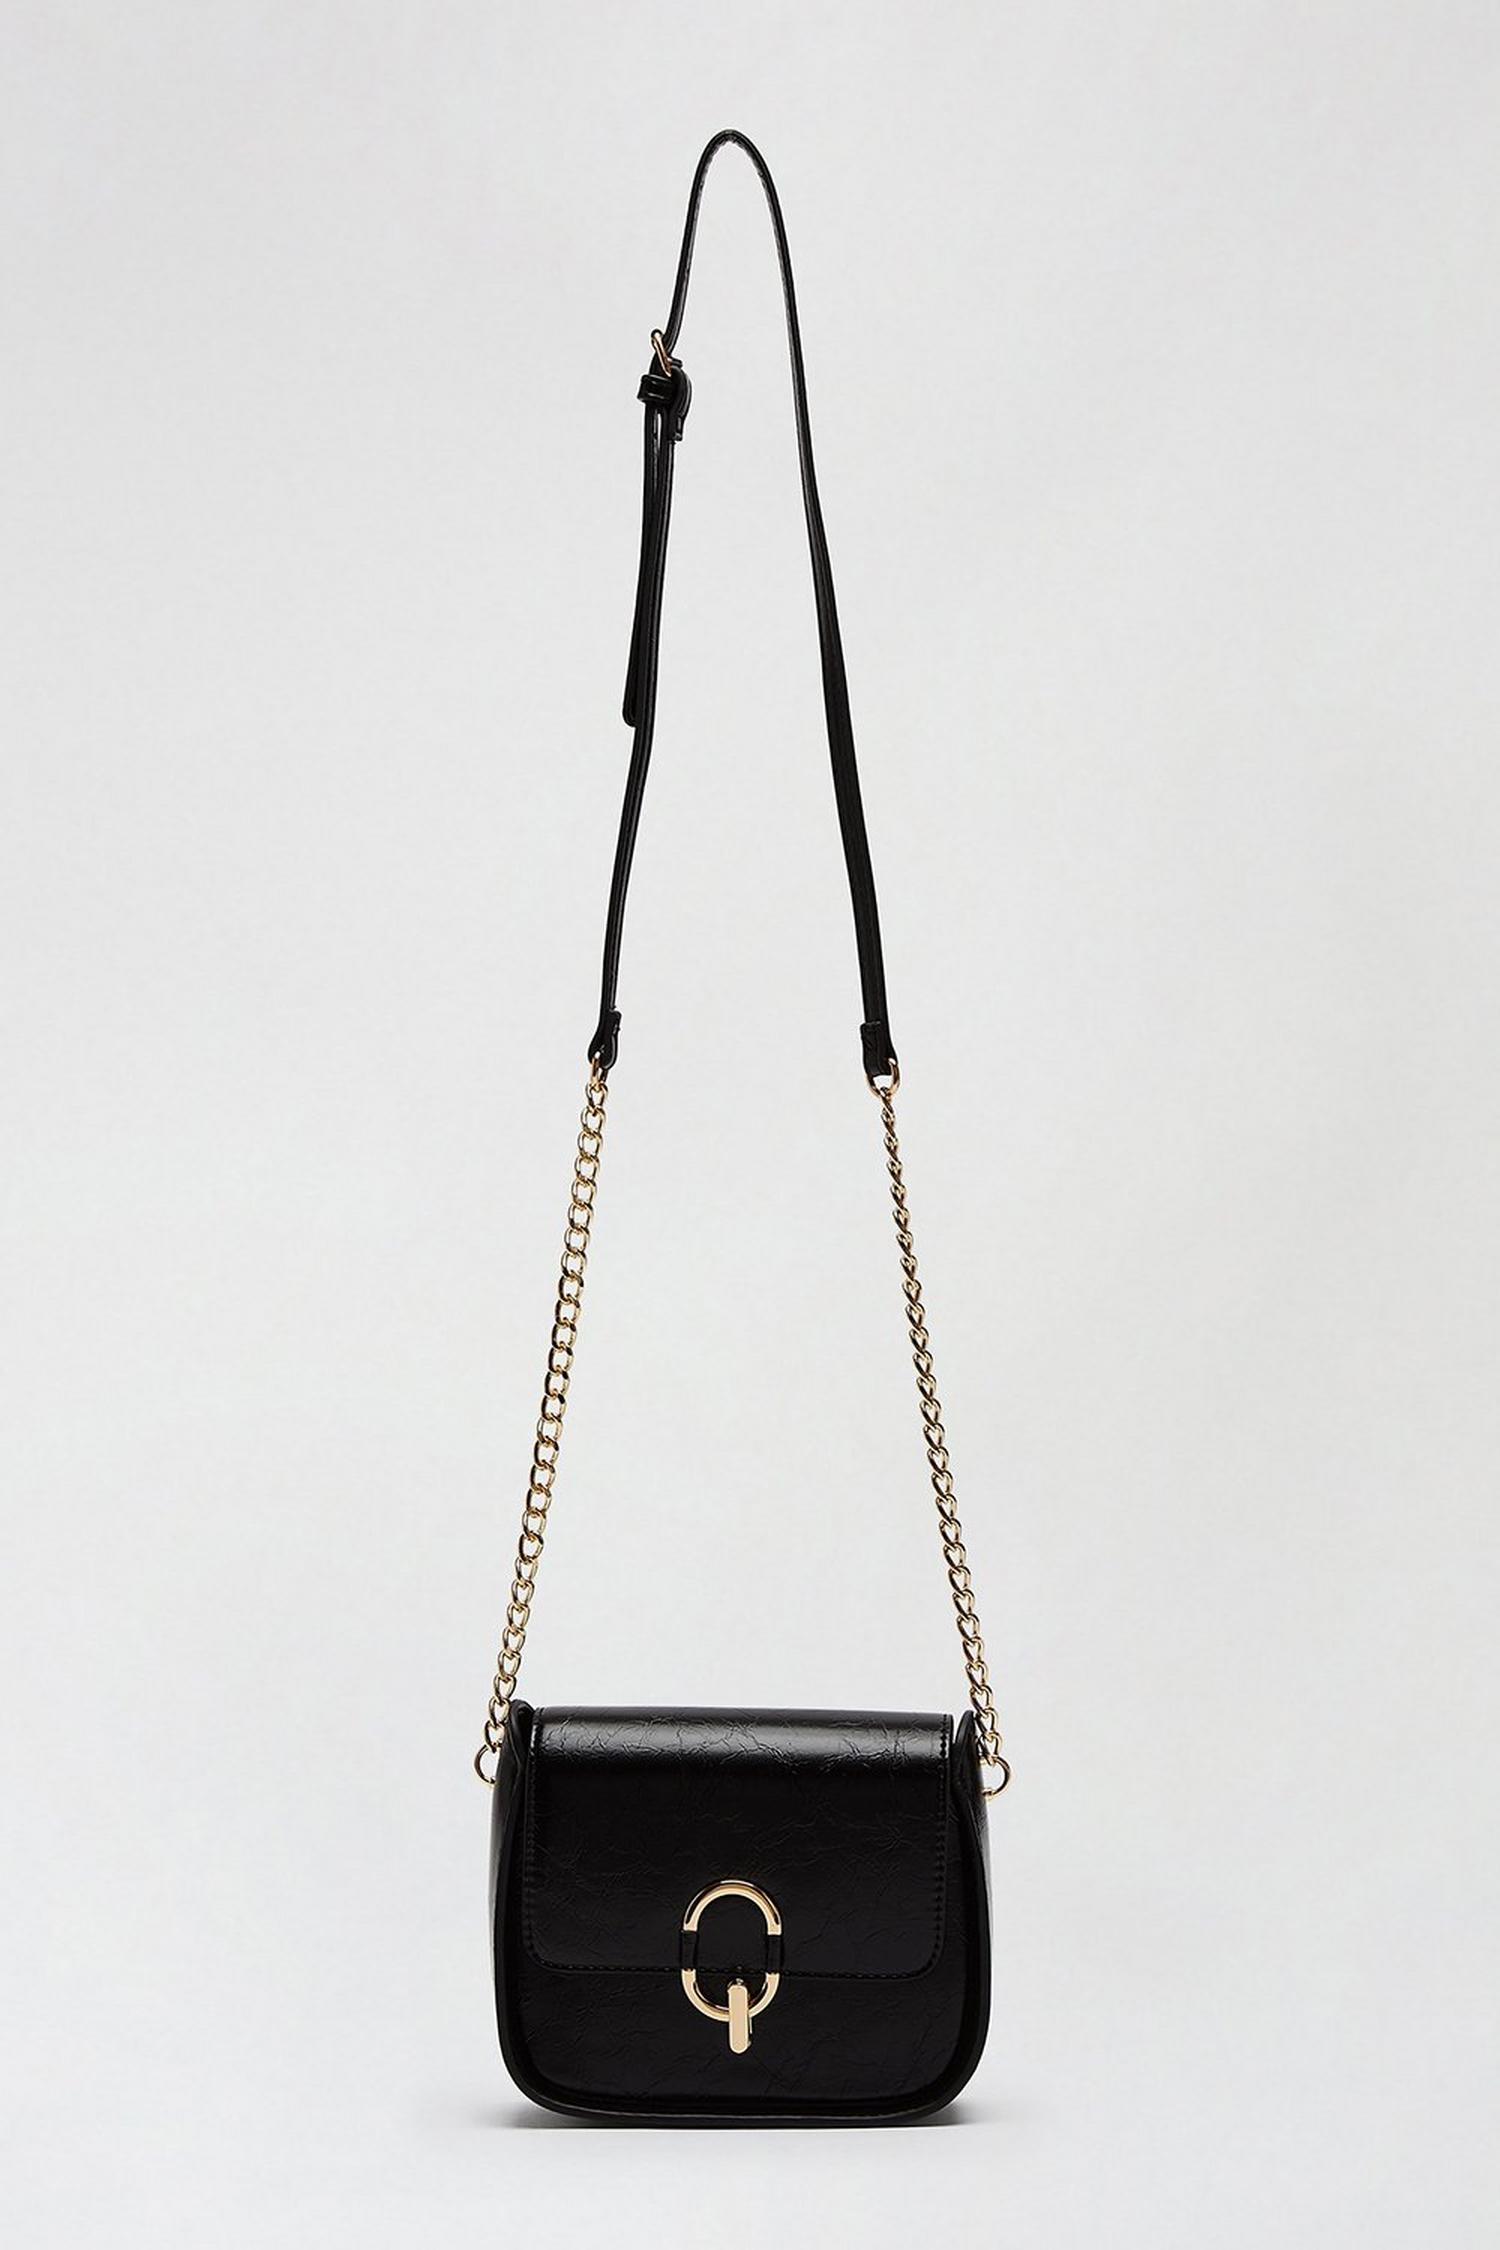 105 Black Oval Ring Saddle Bag image number 1